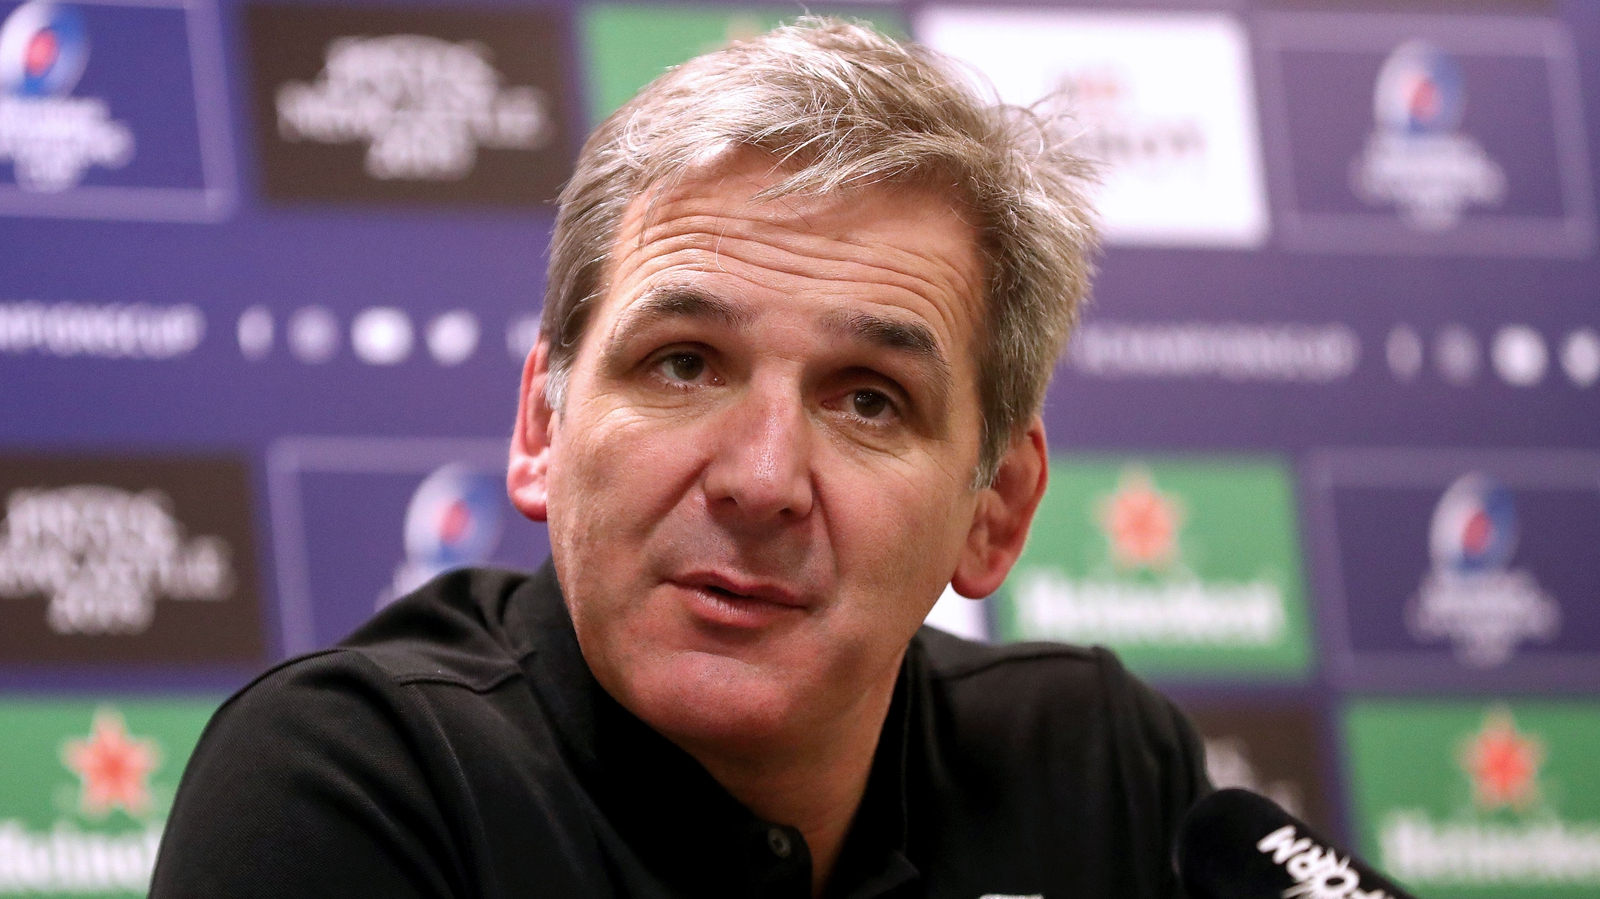 Image - Sonnes is looking to propel Toulouse back to the top of French and European rugby